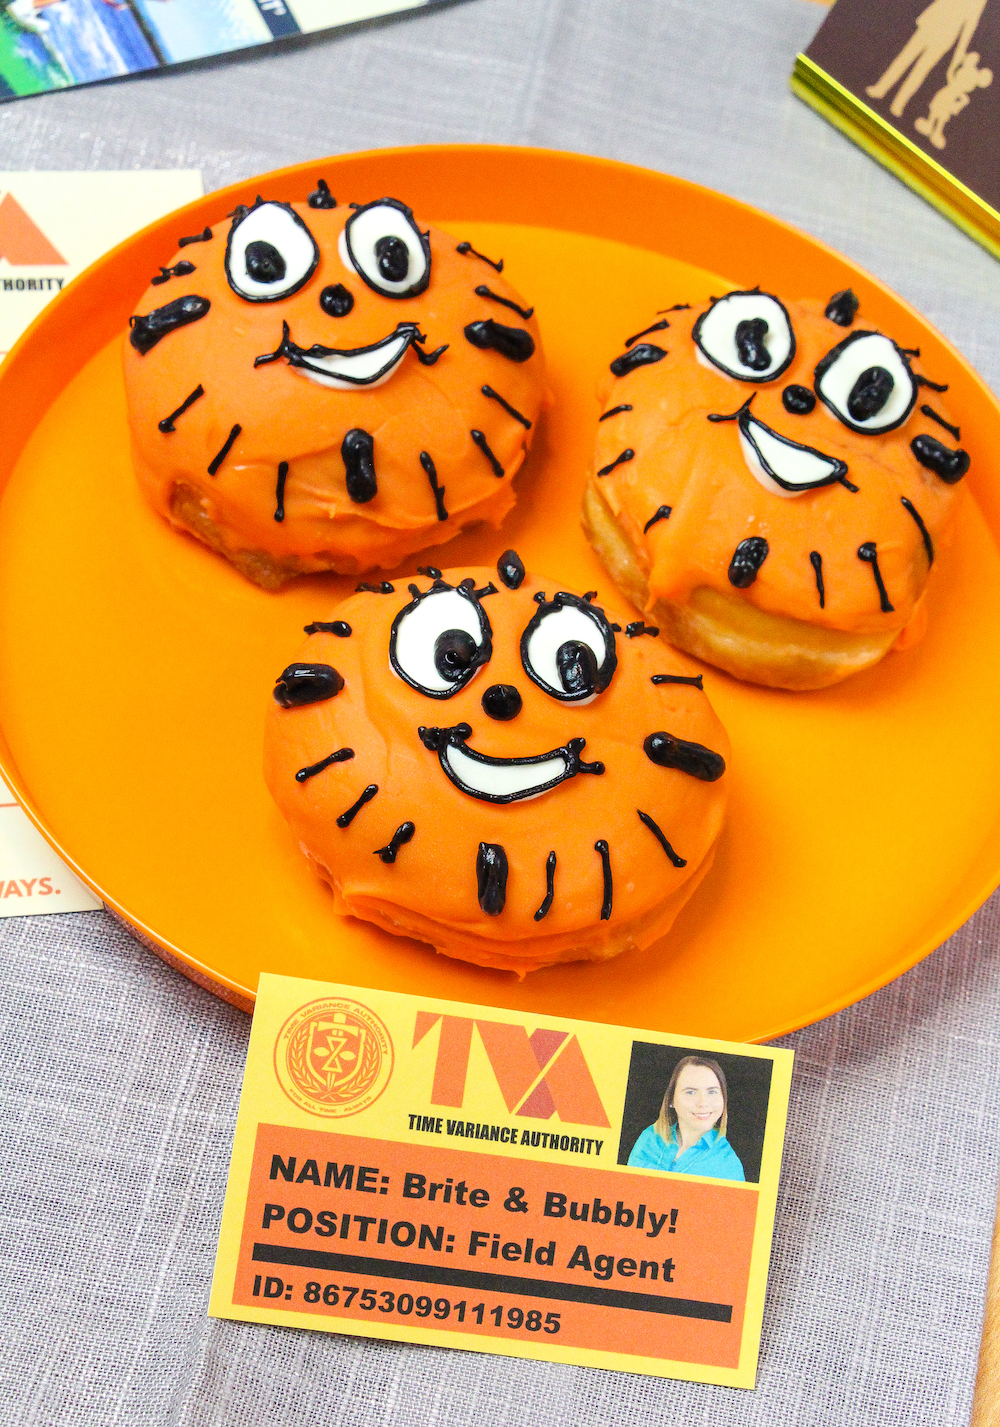 Miss Minutes Donuts on tray and table with tva id